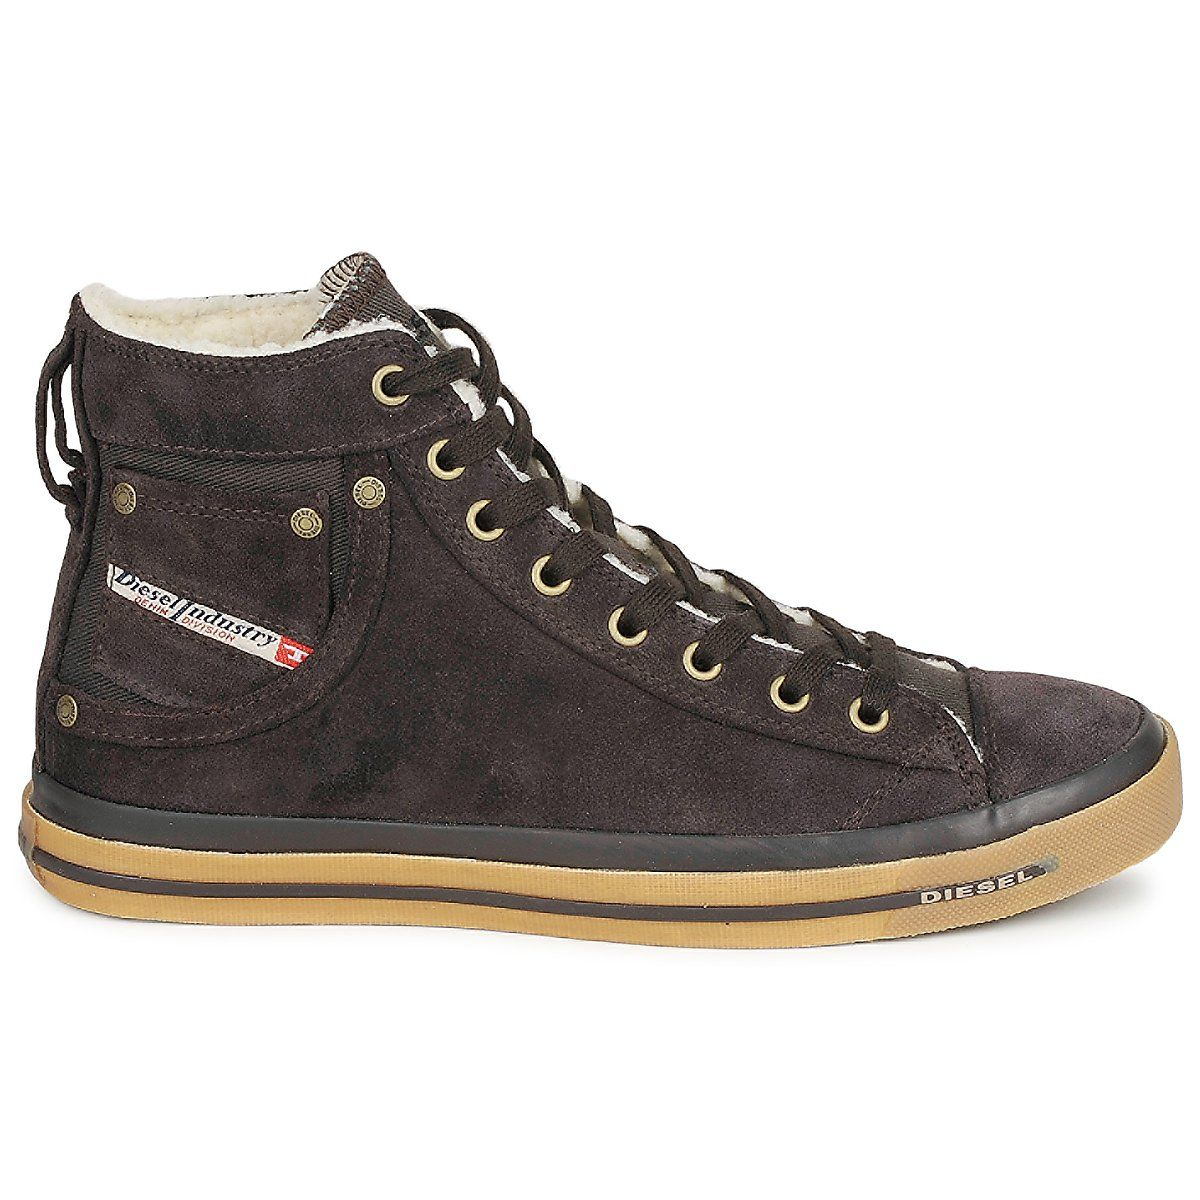 Very Original High Tops For Men By @diesel With Sheepskin